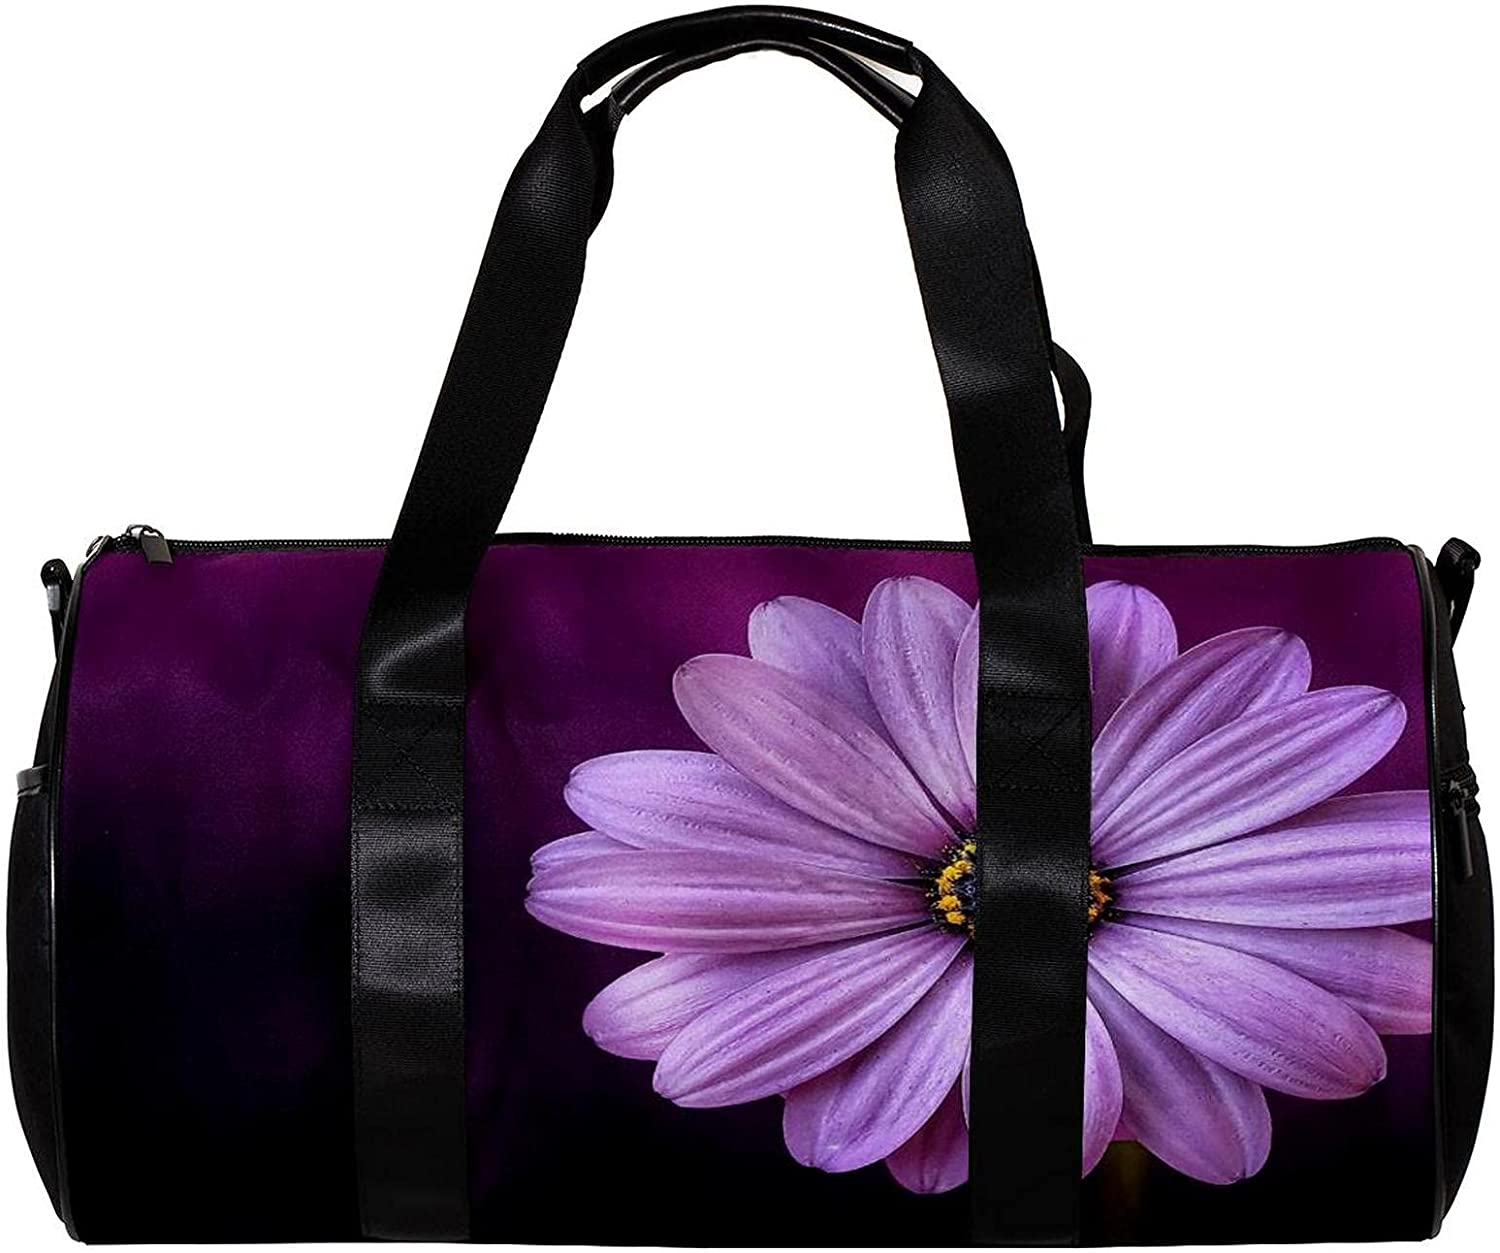 Bucket of sports bag Flower Purple Max 58% OFF inch Gym Popular products Duffe size: 17.7x9x9